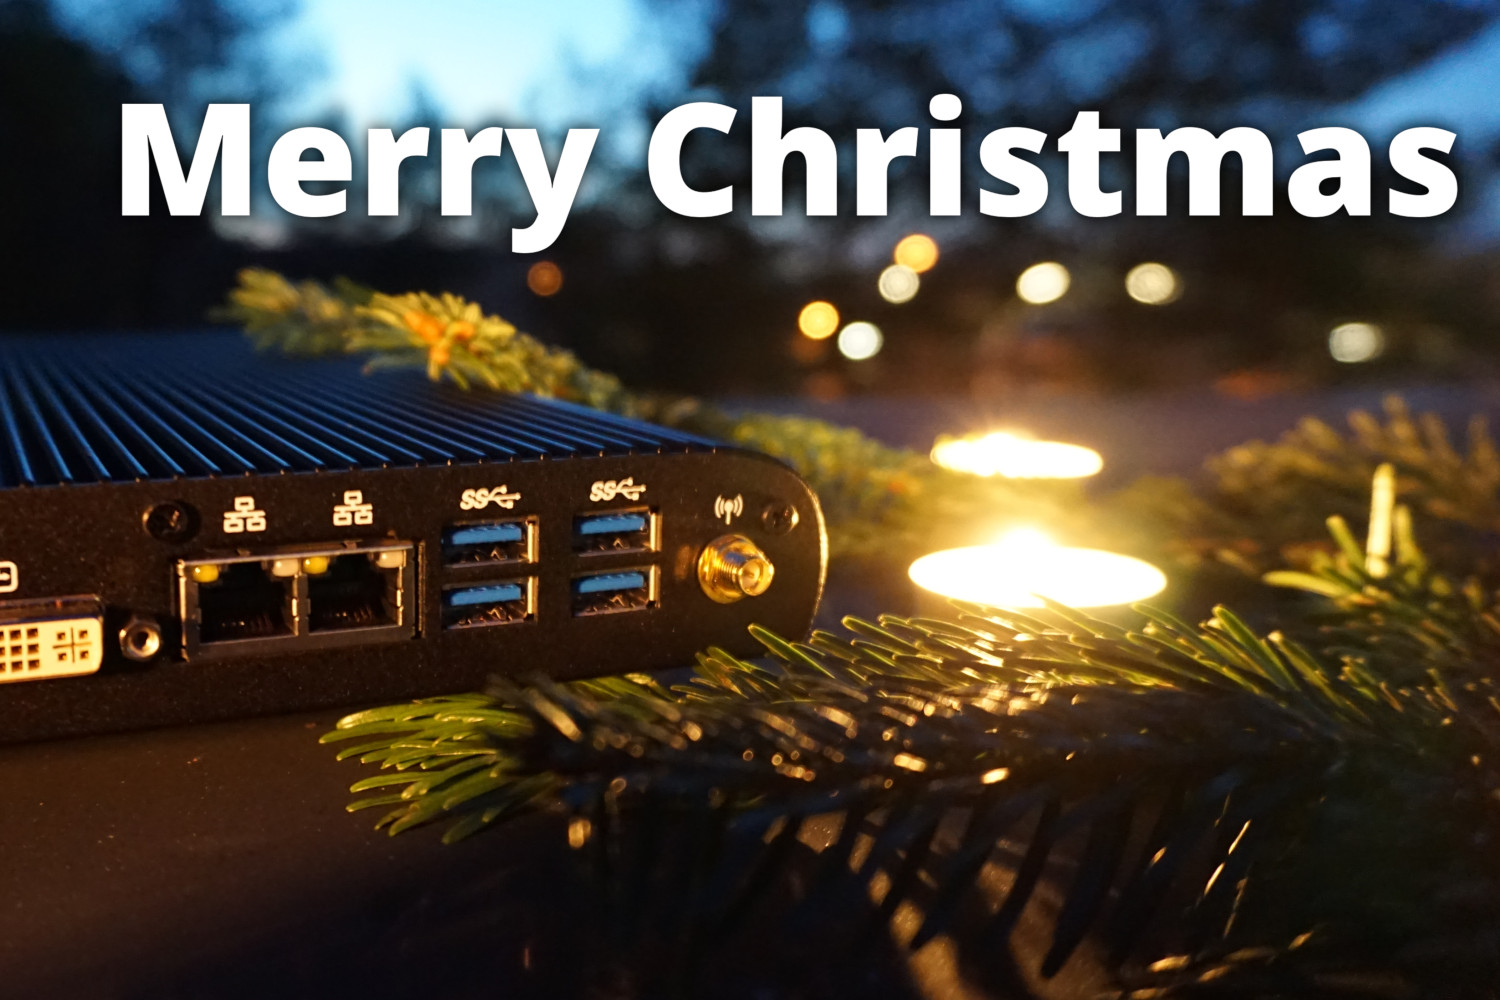 spo-comm wishes you a Merry Christmas and a successful 2016